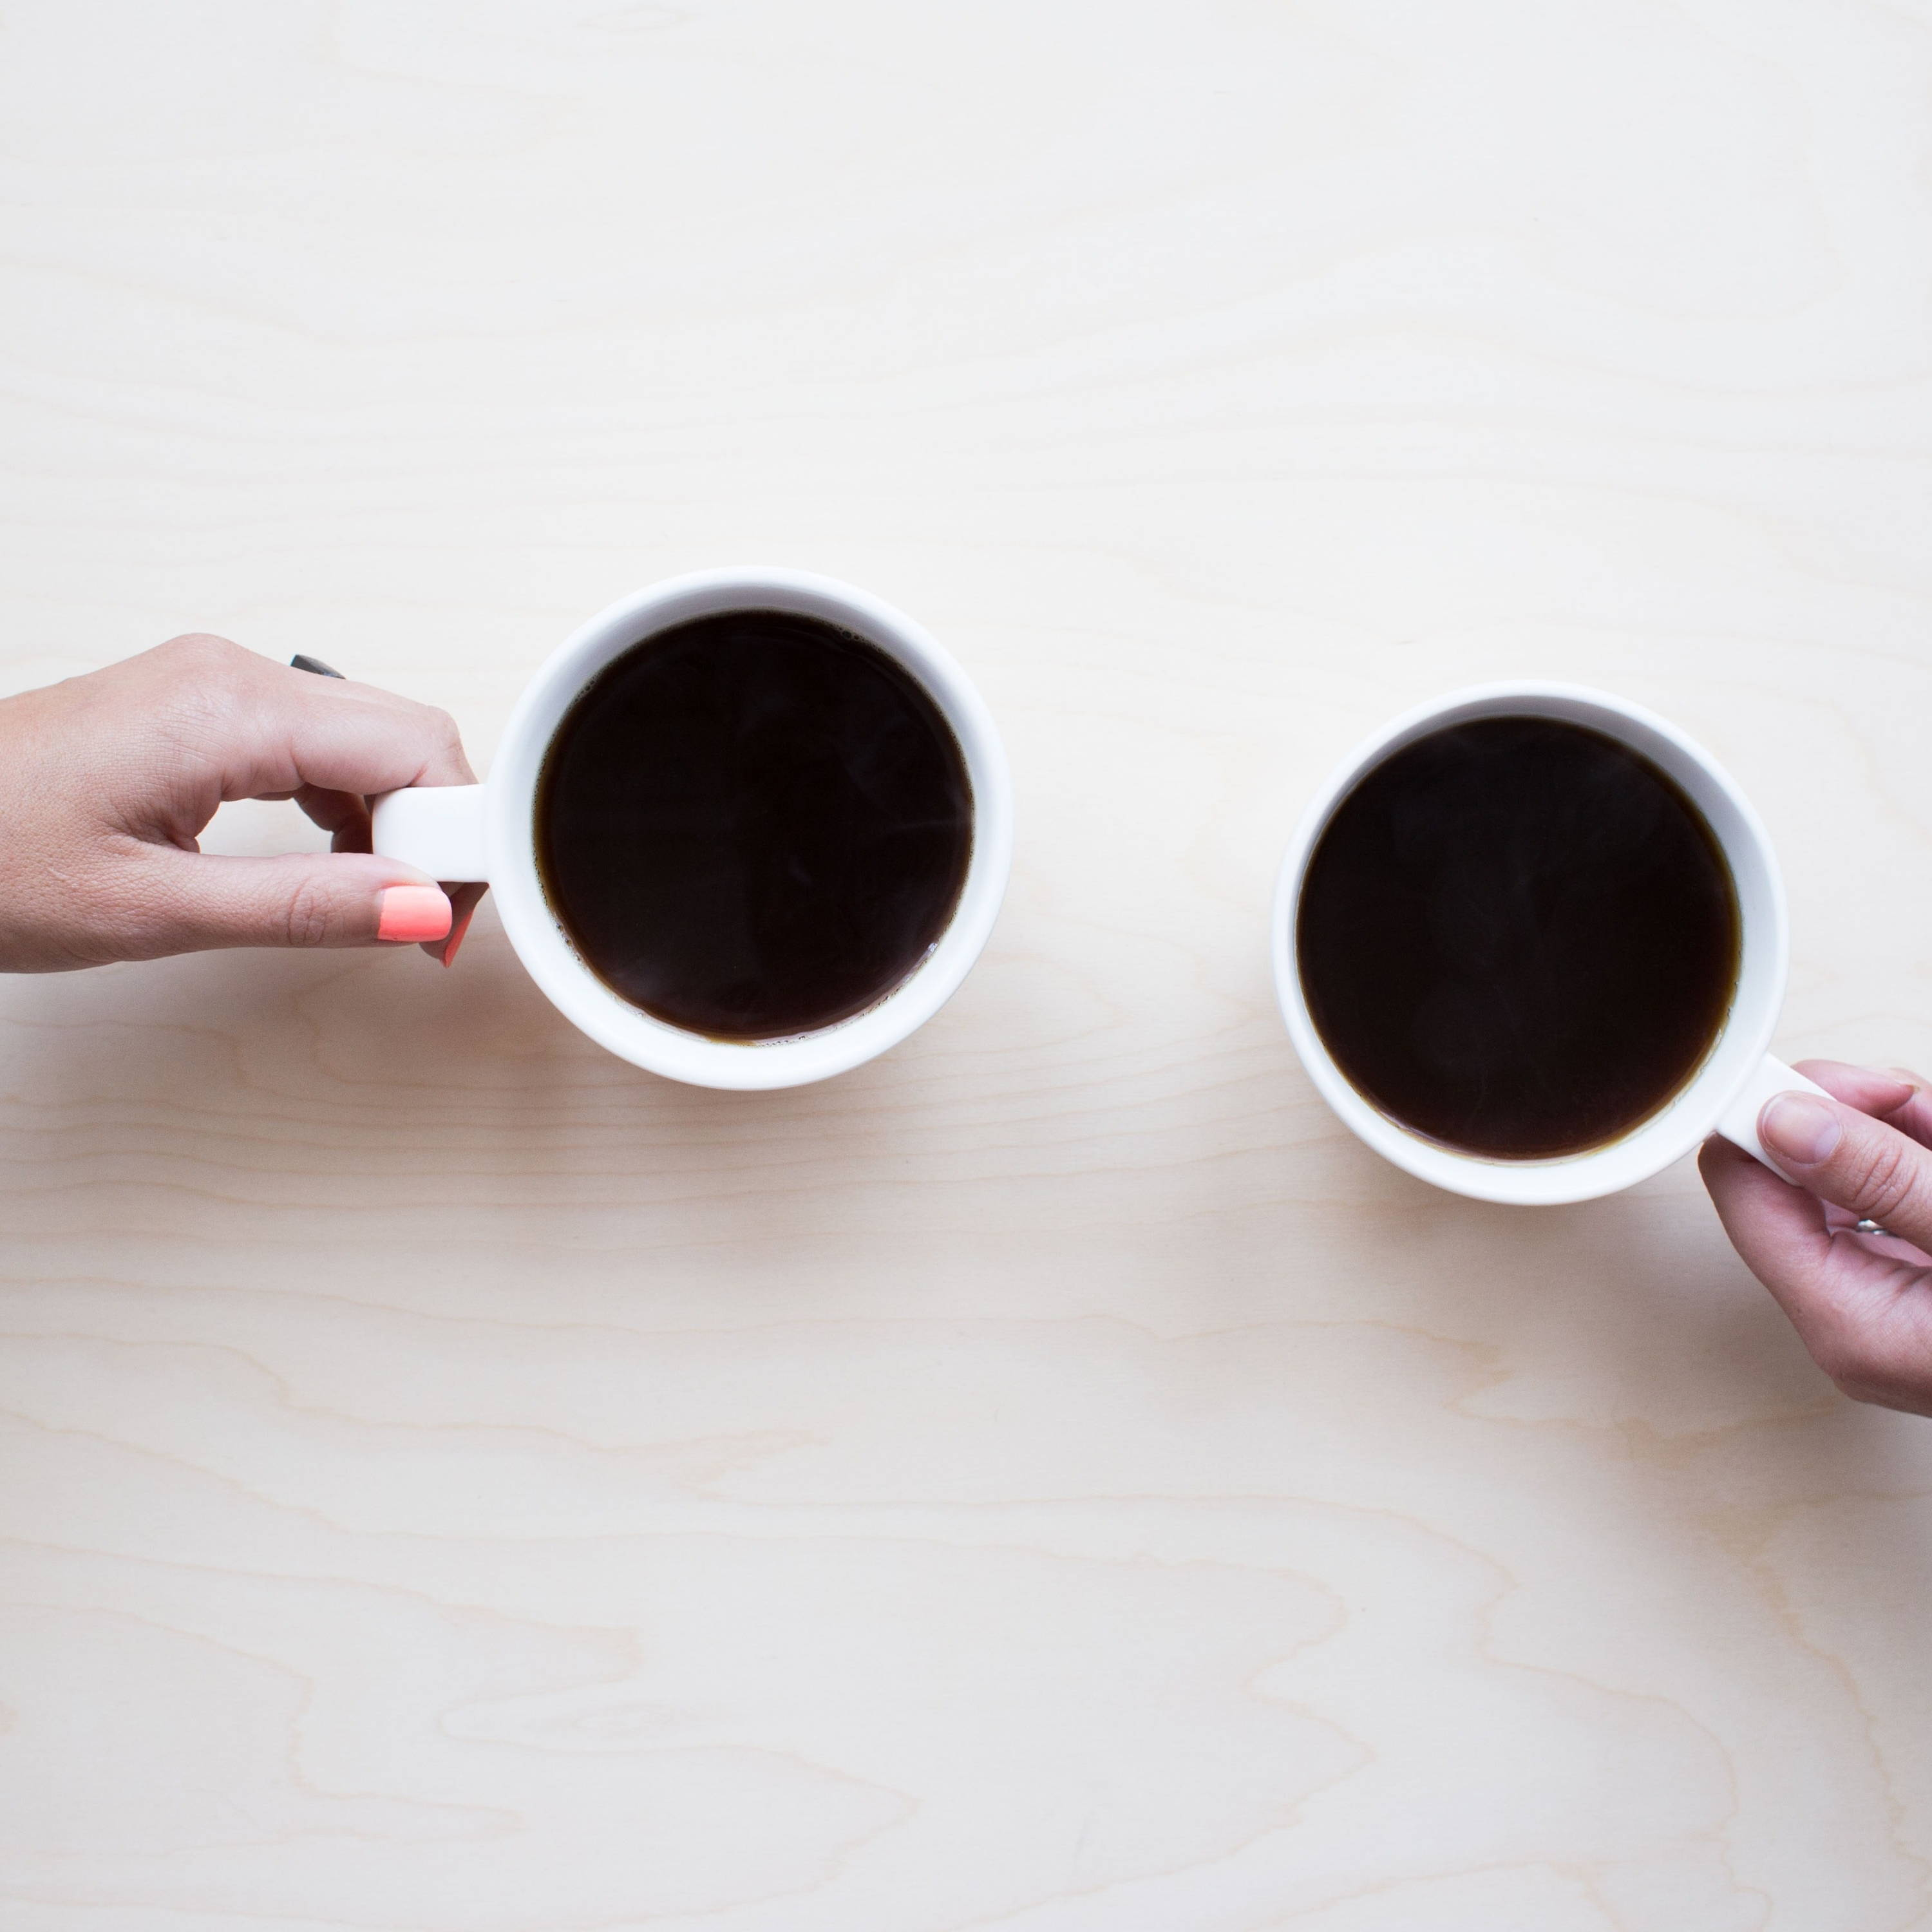 2 people drinking coffee